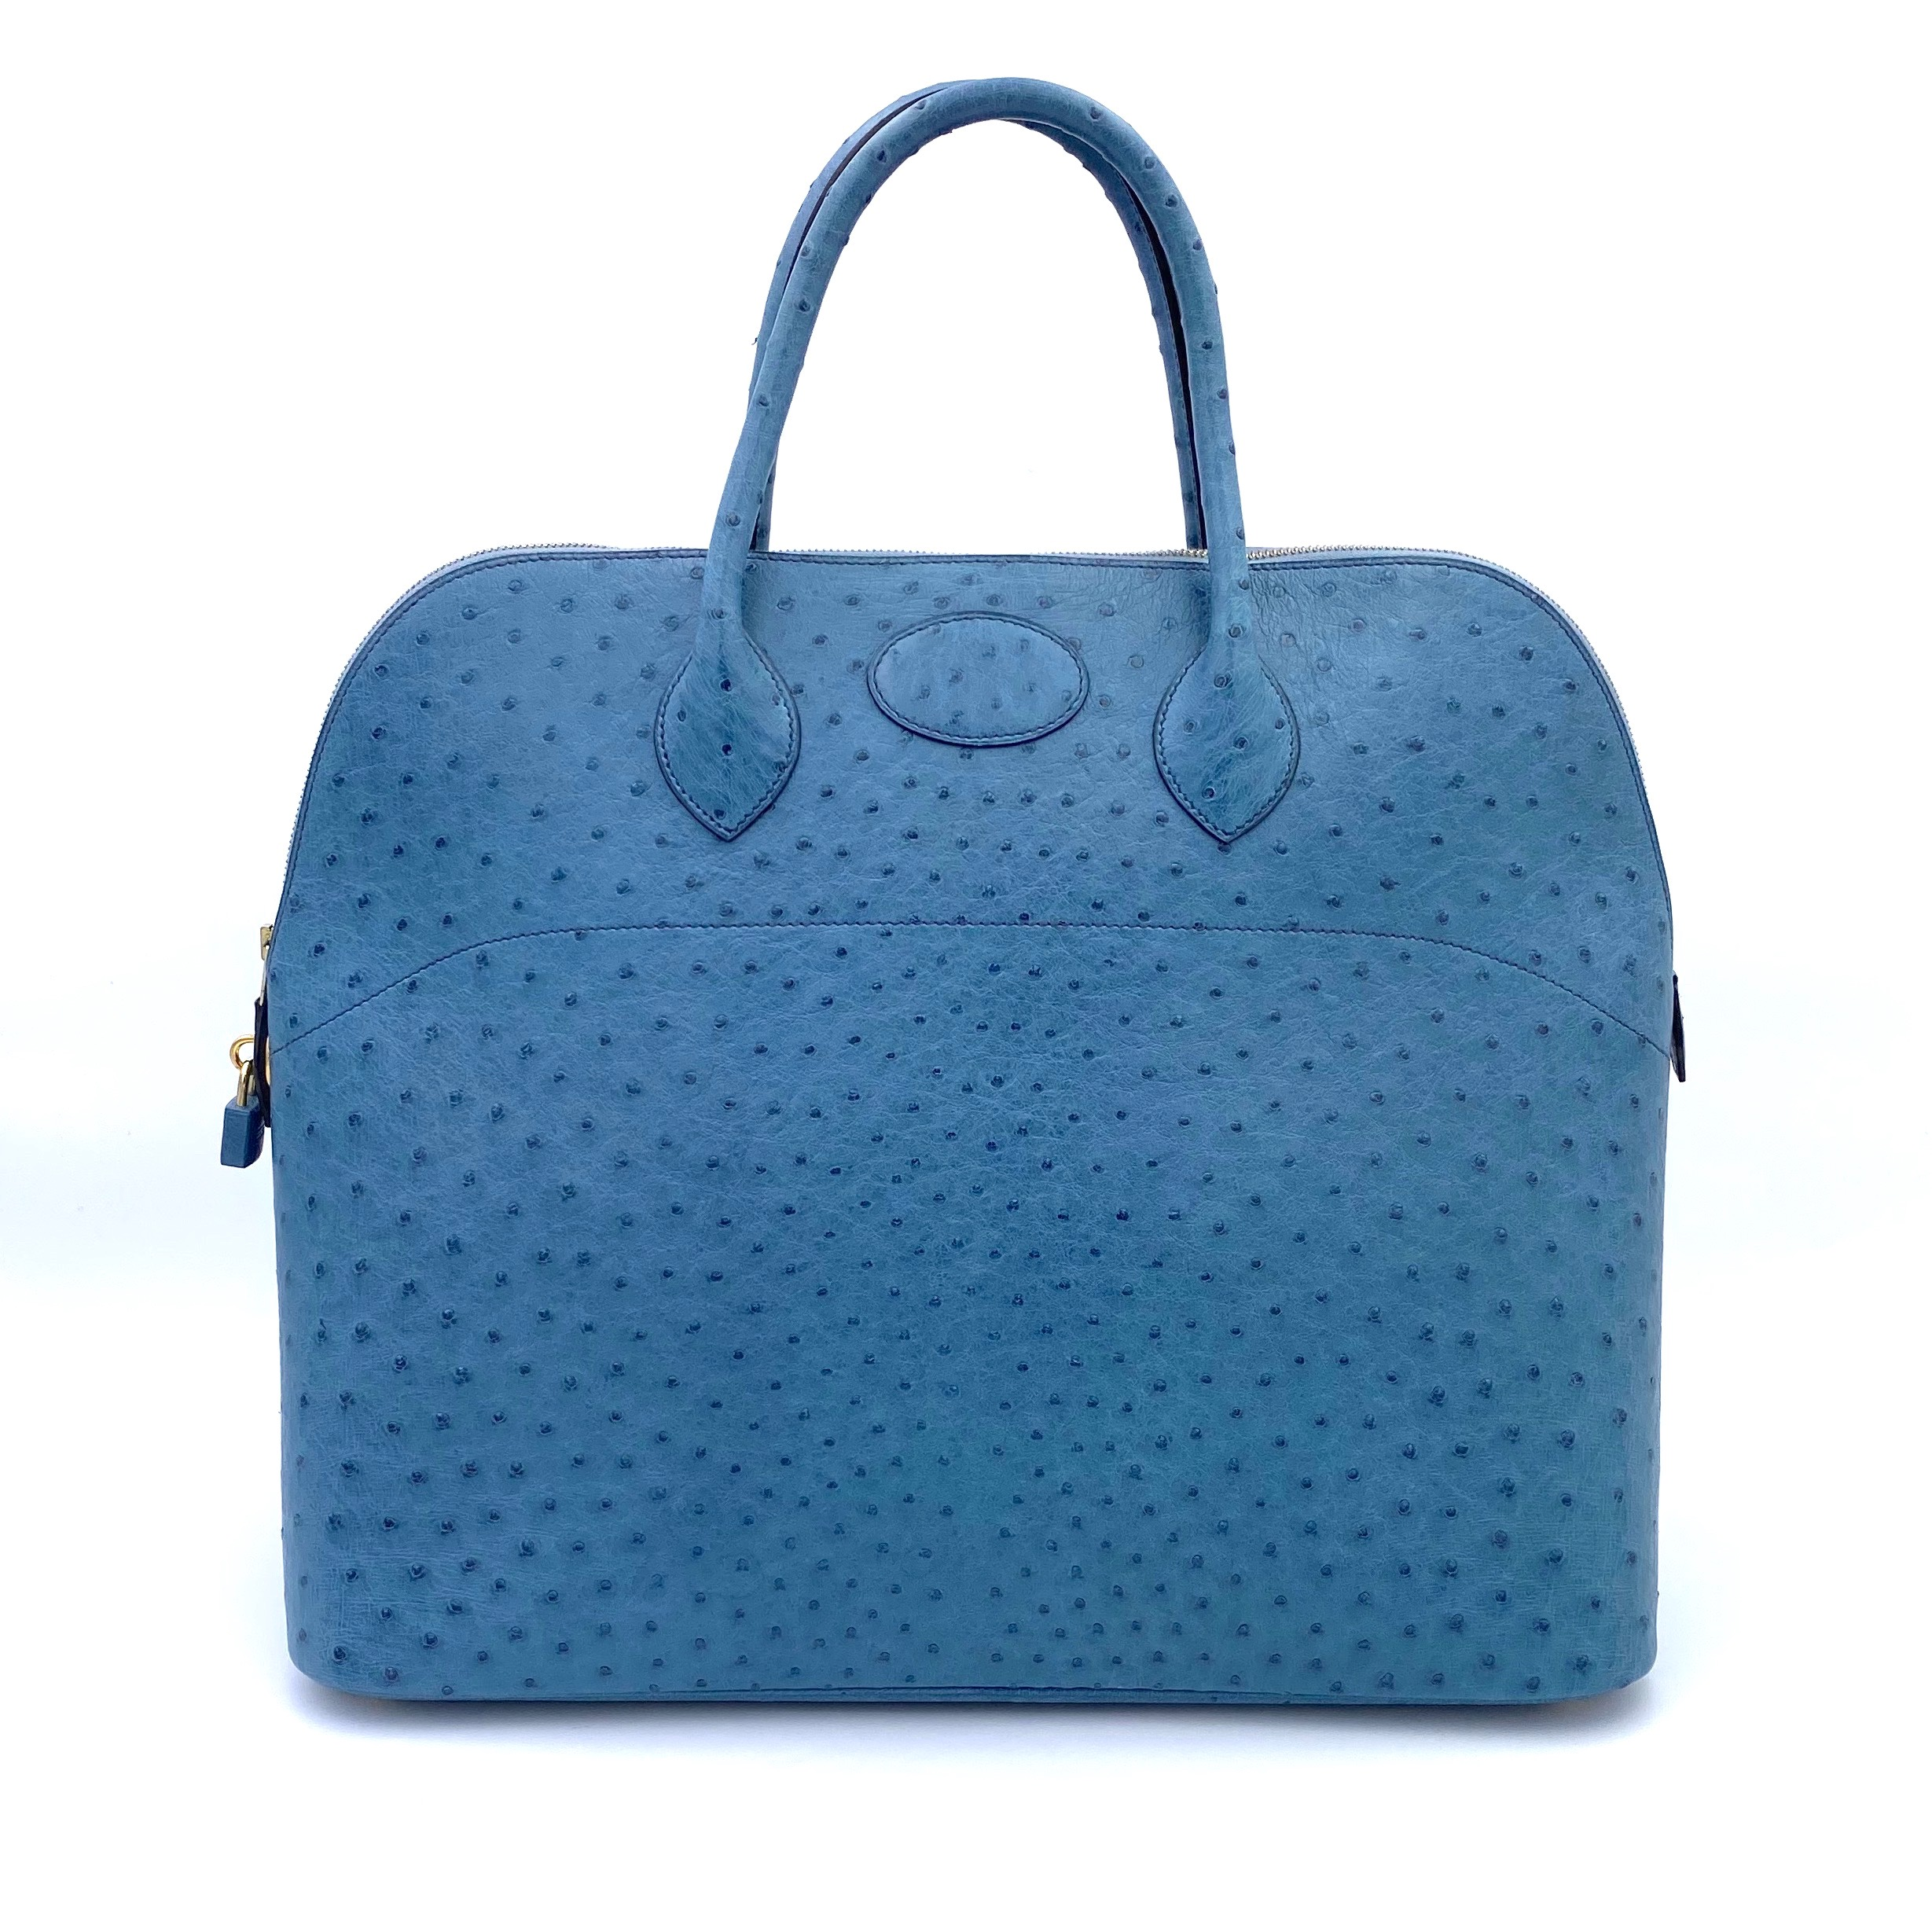 View full screen - View 1 of Lot 343. Teal Bolide 45cm in Ostrich Leather with Gold Hardware, 1997.